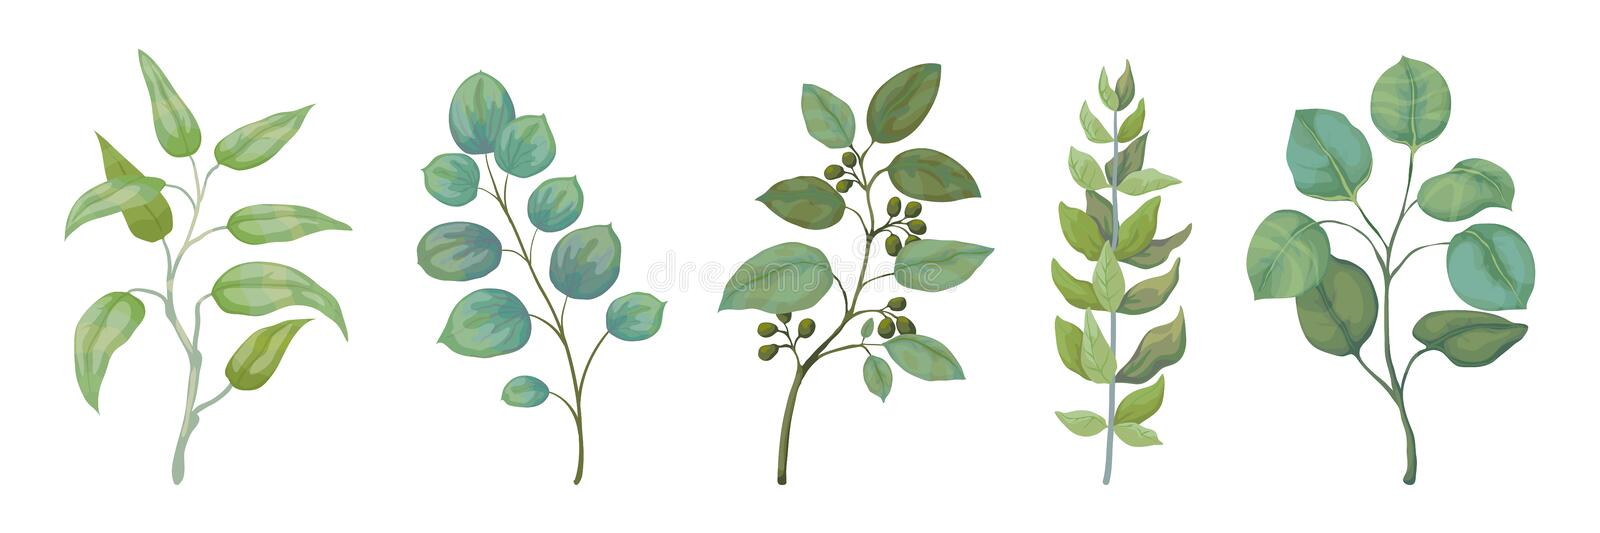 Eucalyptus plants. Rustic foliage branches and leaves for wedding invitation cards, decorative herbs collection. Vector stock illustration